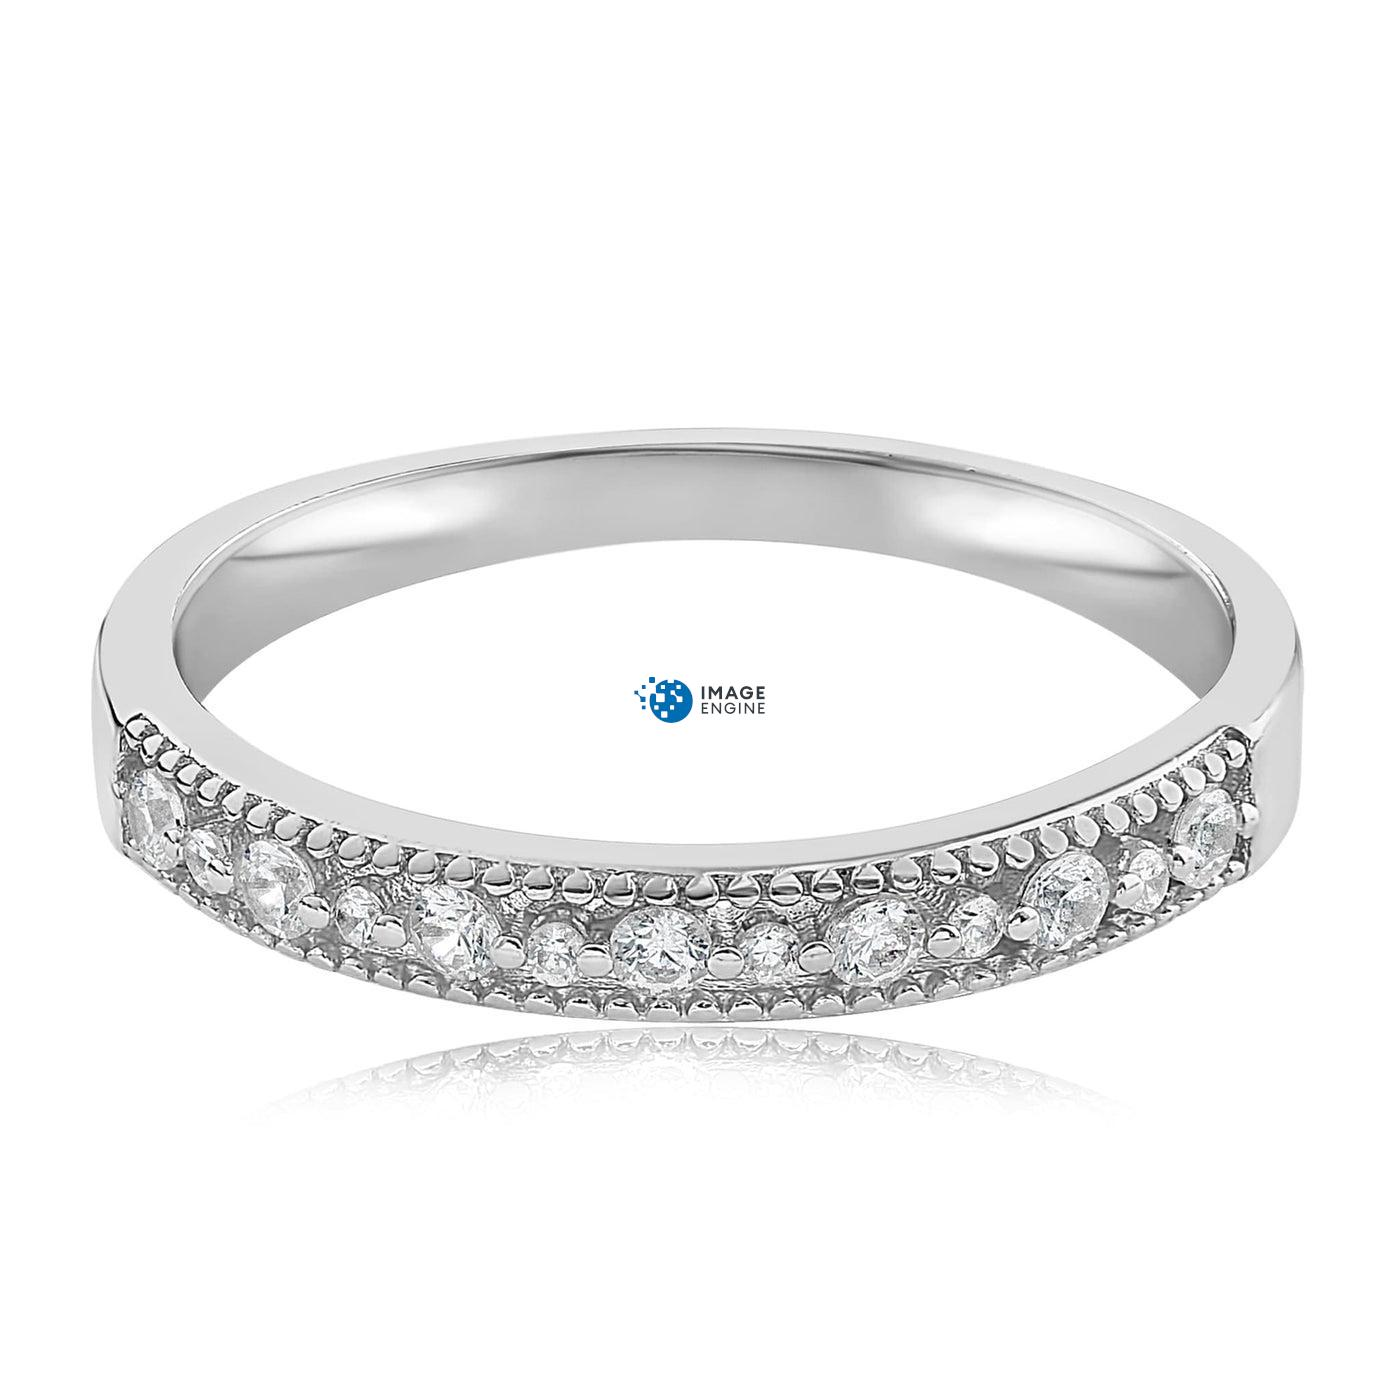 Joyce Layered Stack Ring - Front View Facing Down - 925 Sterling Silver